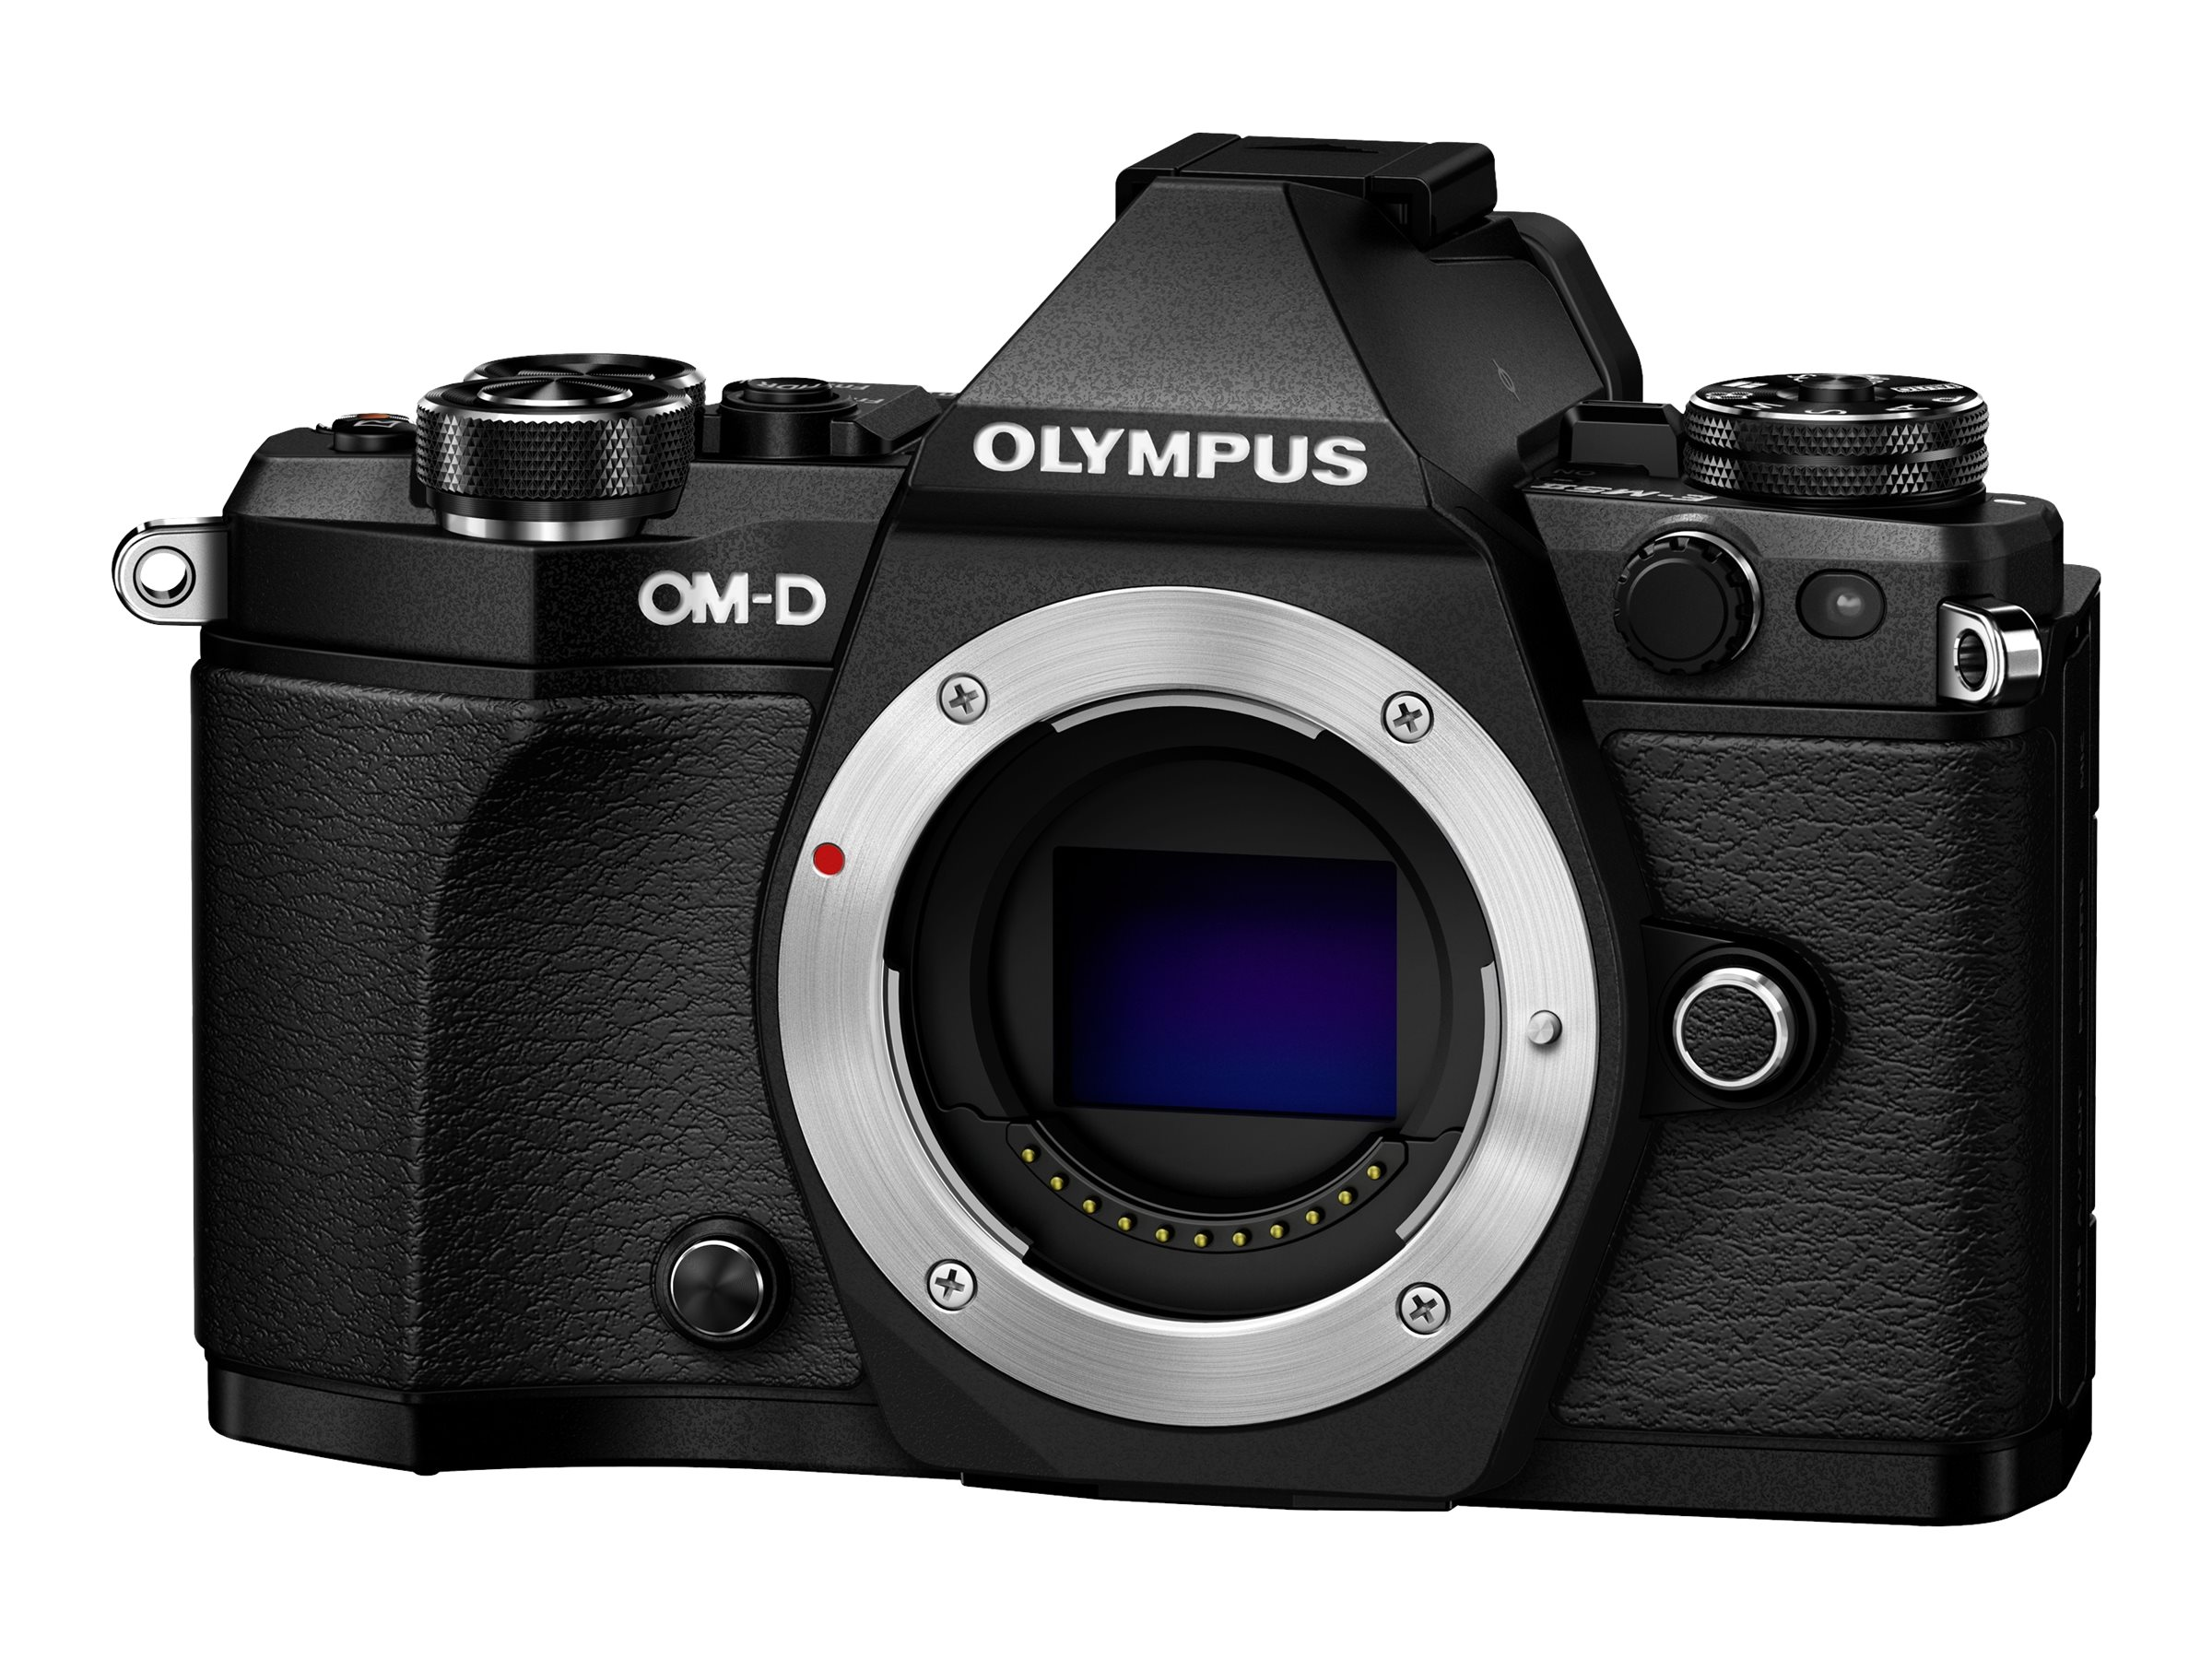 Olympus OM-D E-M5 Mark II Mirrorless Micro Four Thirds Digital, Black (Body Only), V207040BU000, 18478133, Cameras - Digital - SLR